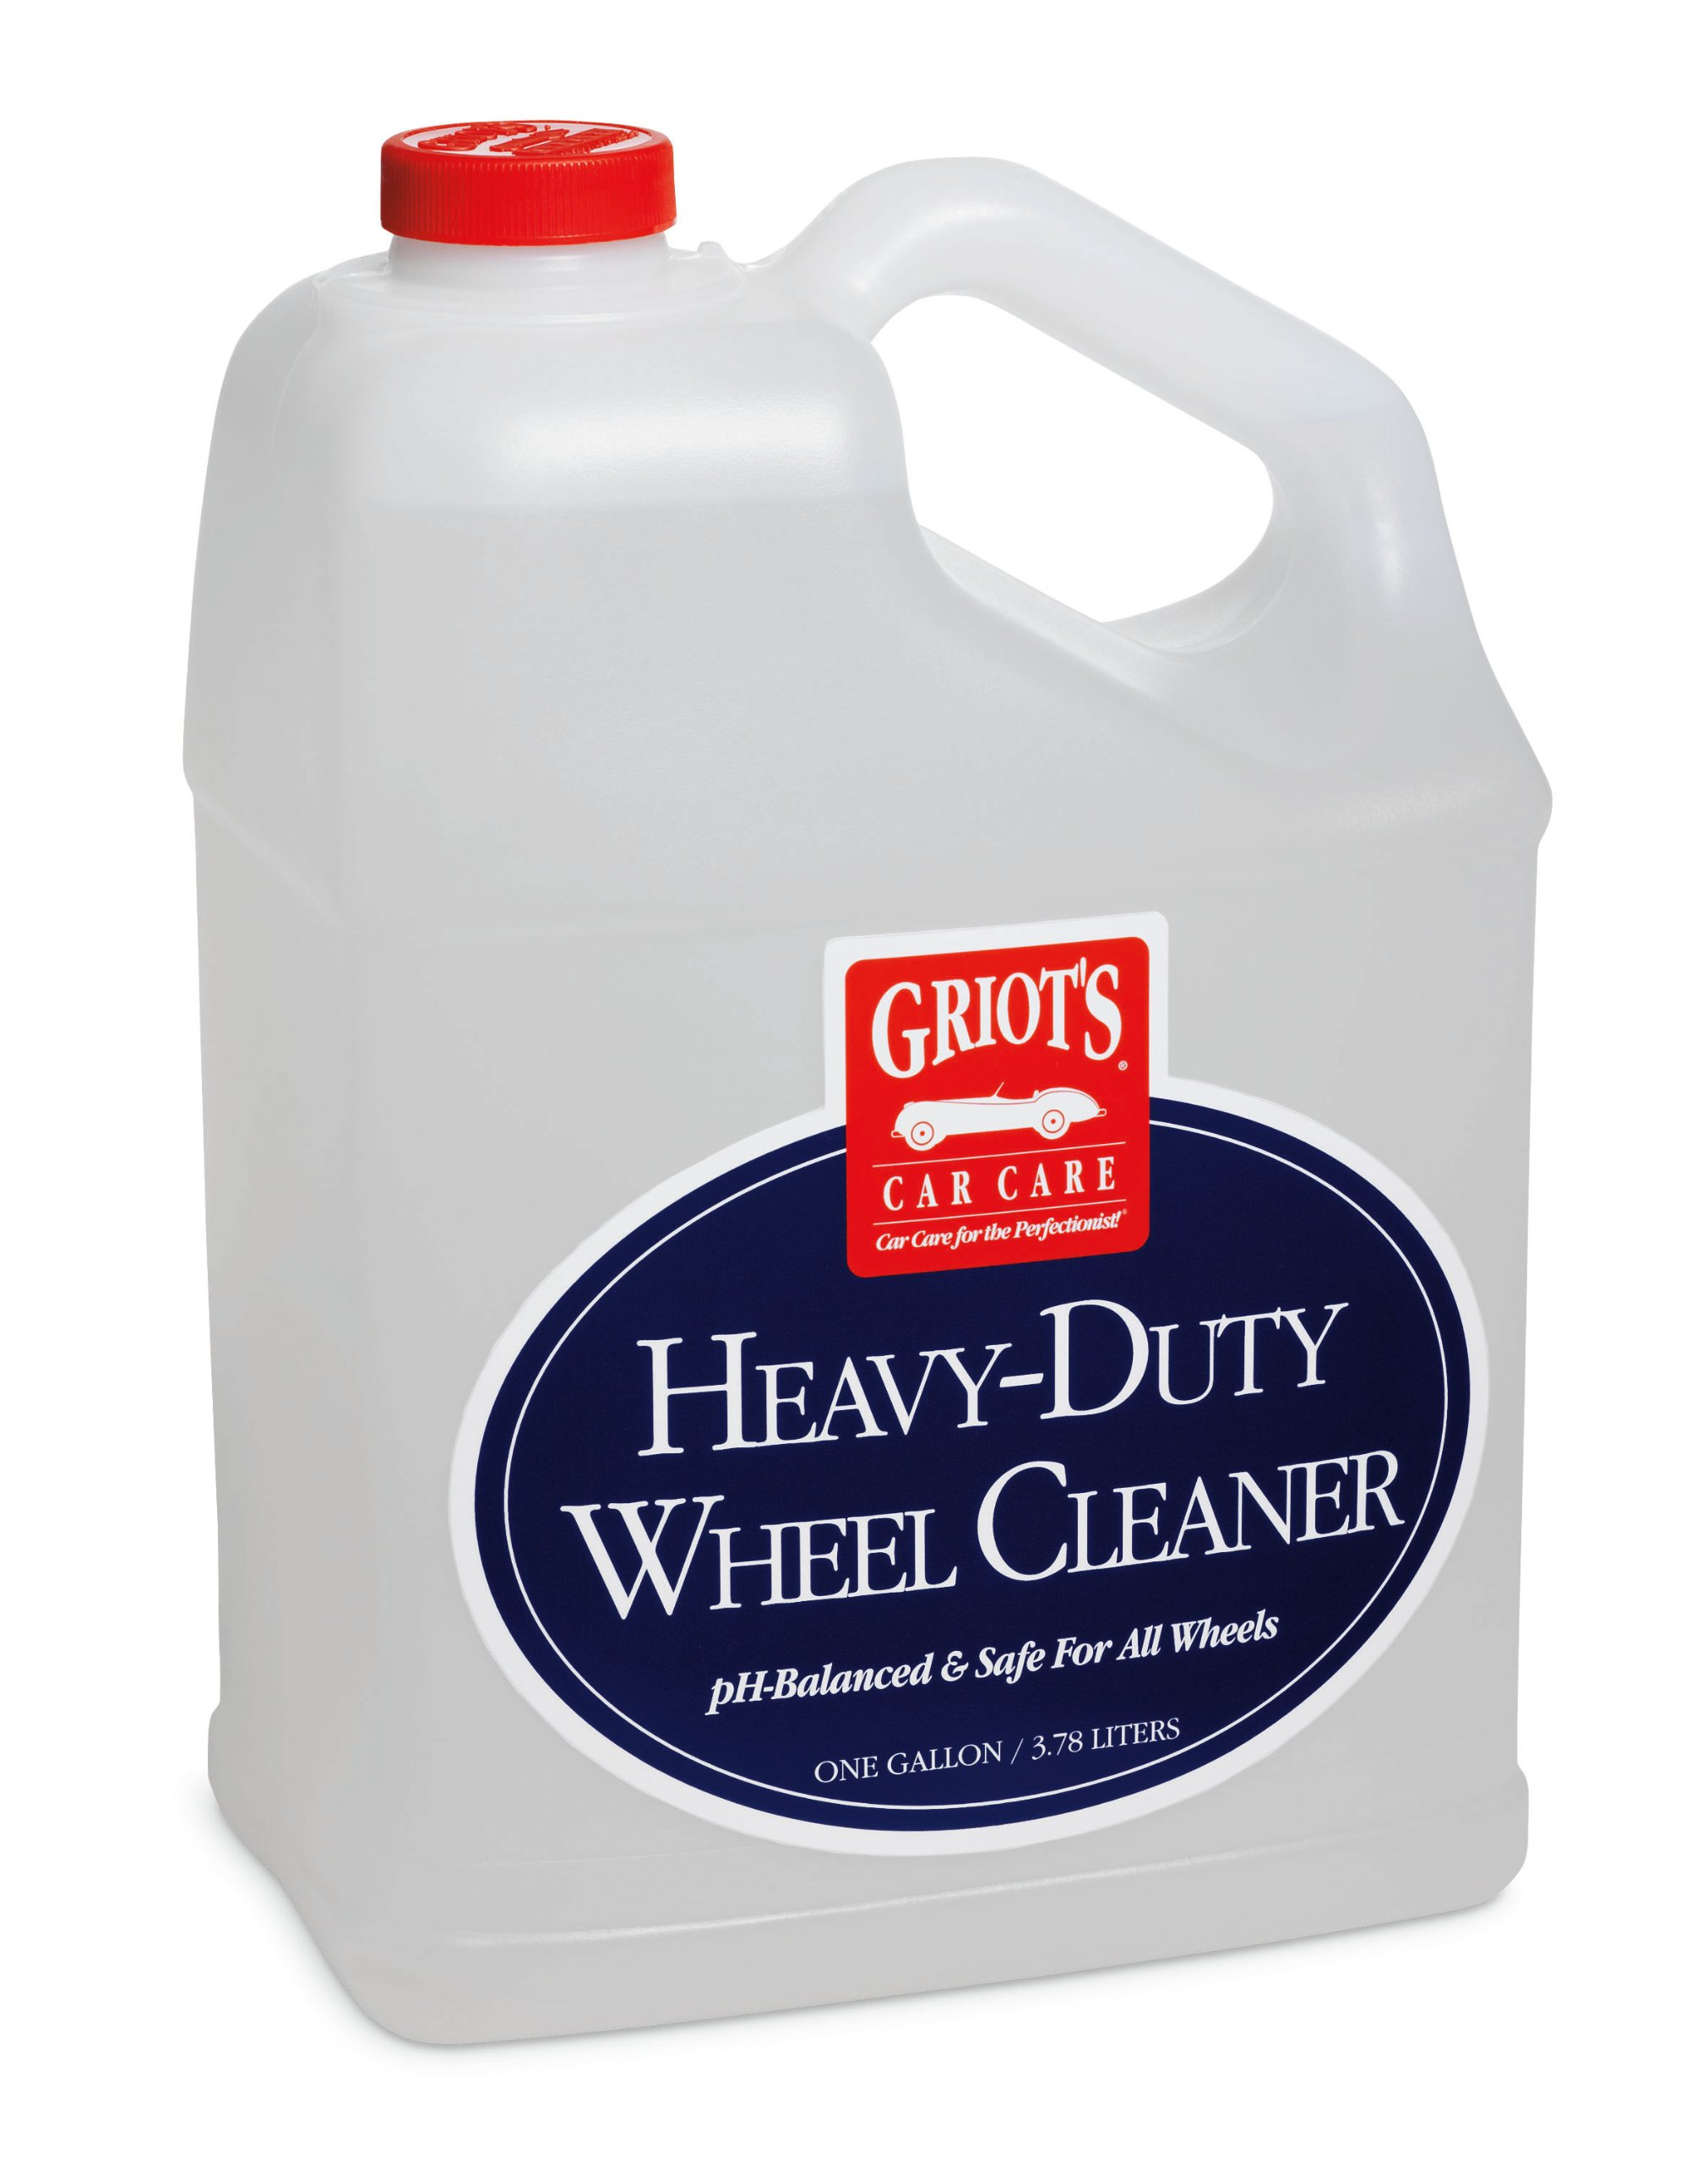 Griots Garage 11027 Heavy Duty Wheel Cleaner Gallon product image